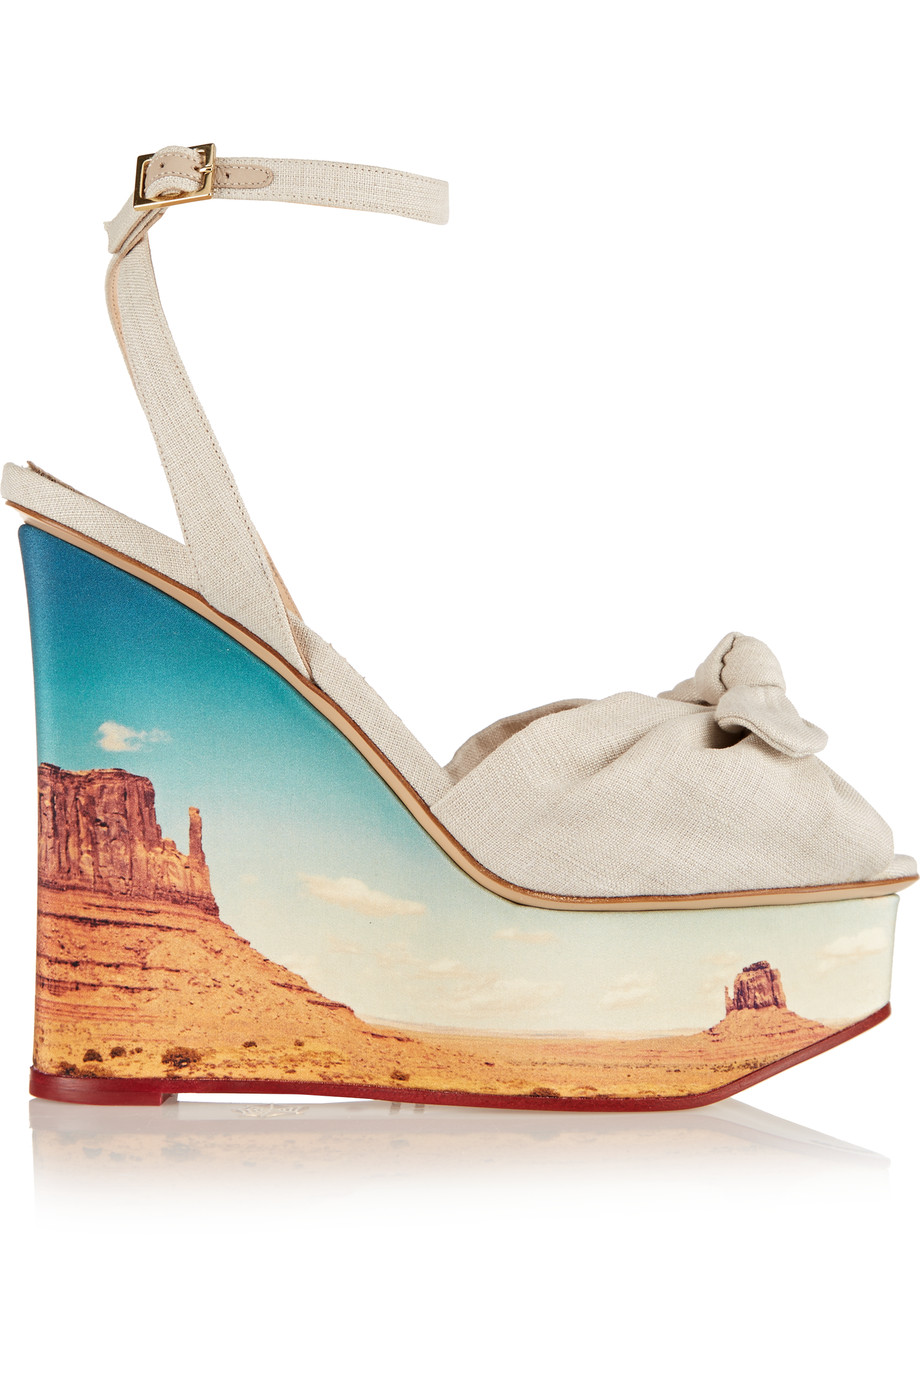 CHARLOTTE OLYMPIA Panoramic Miranda Canvas Wedge Sandals at THE OUTNET.COM